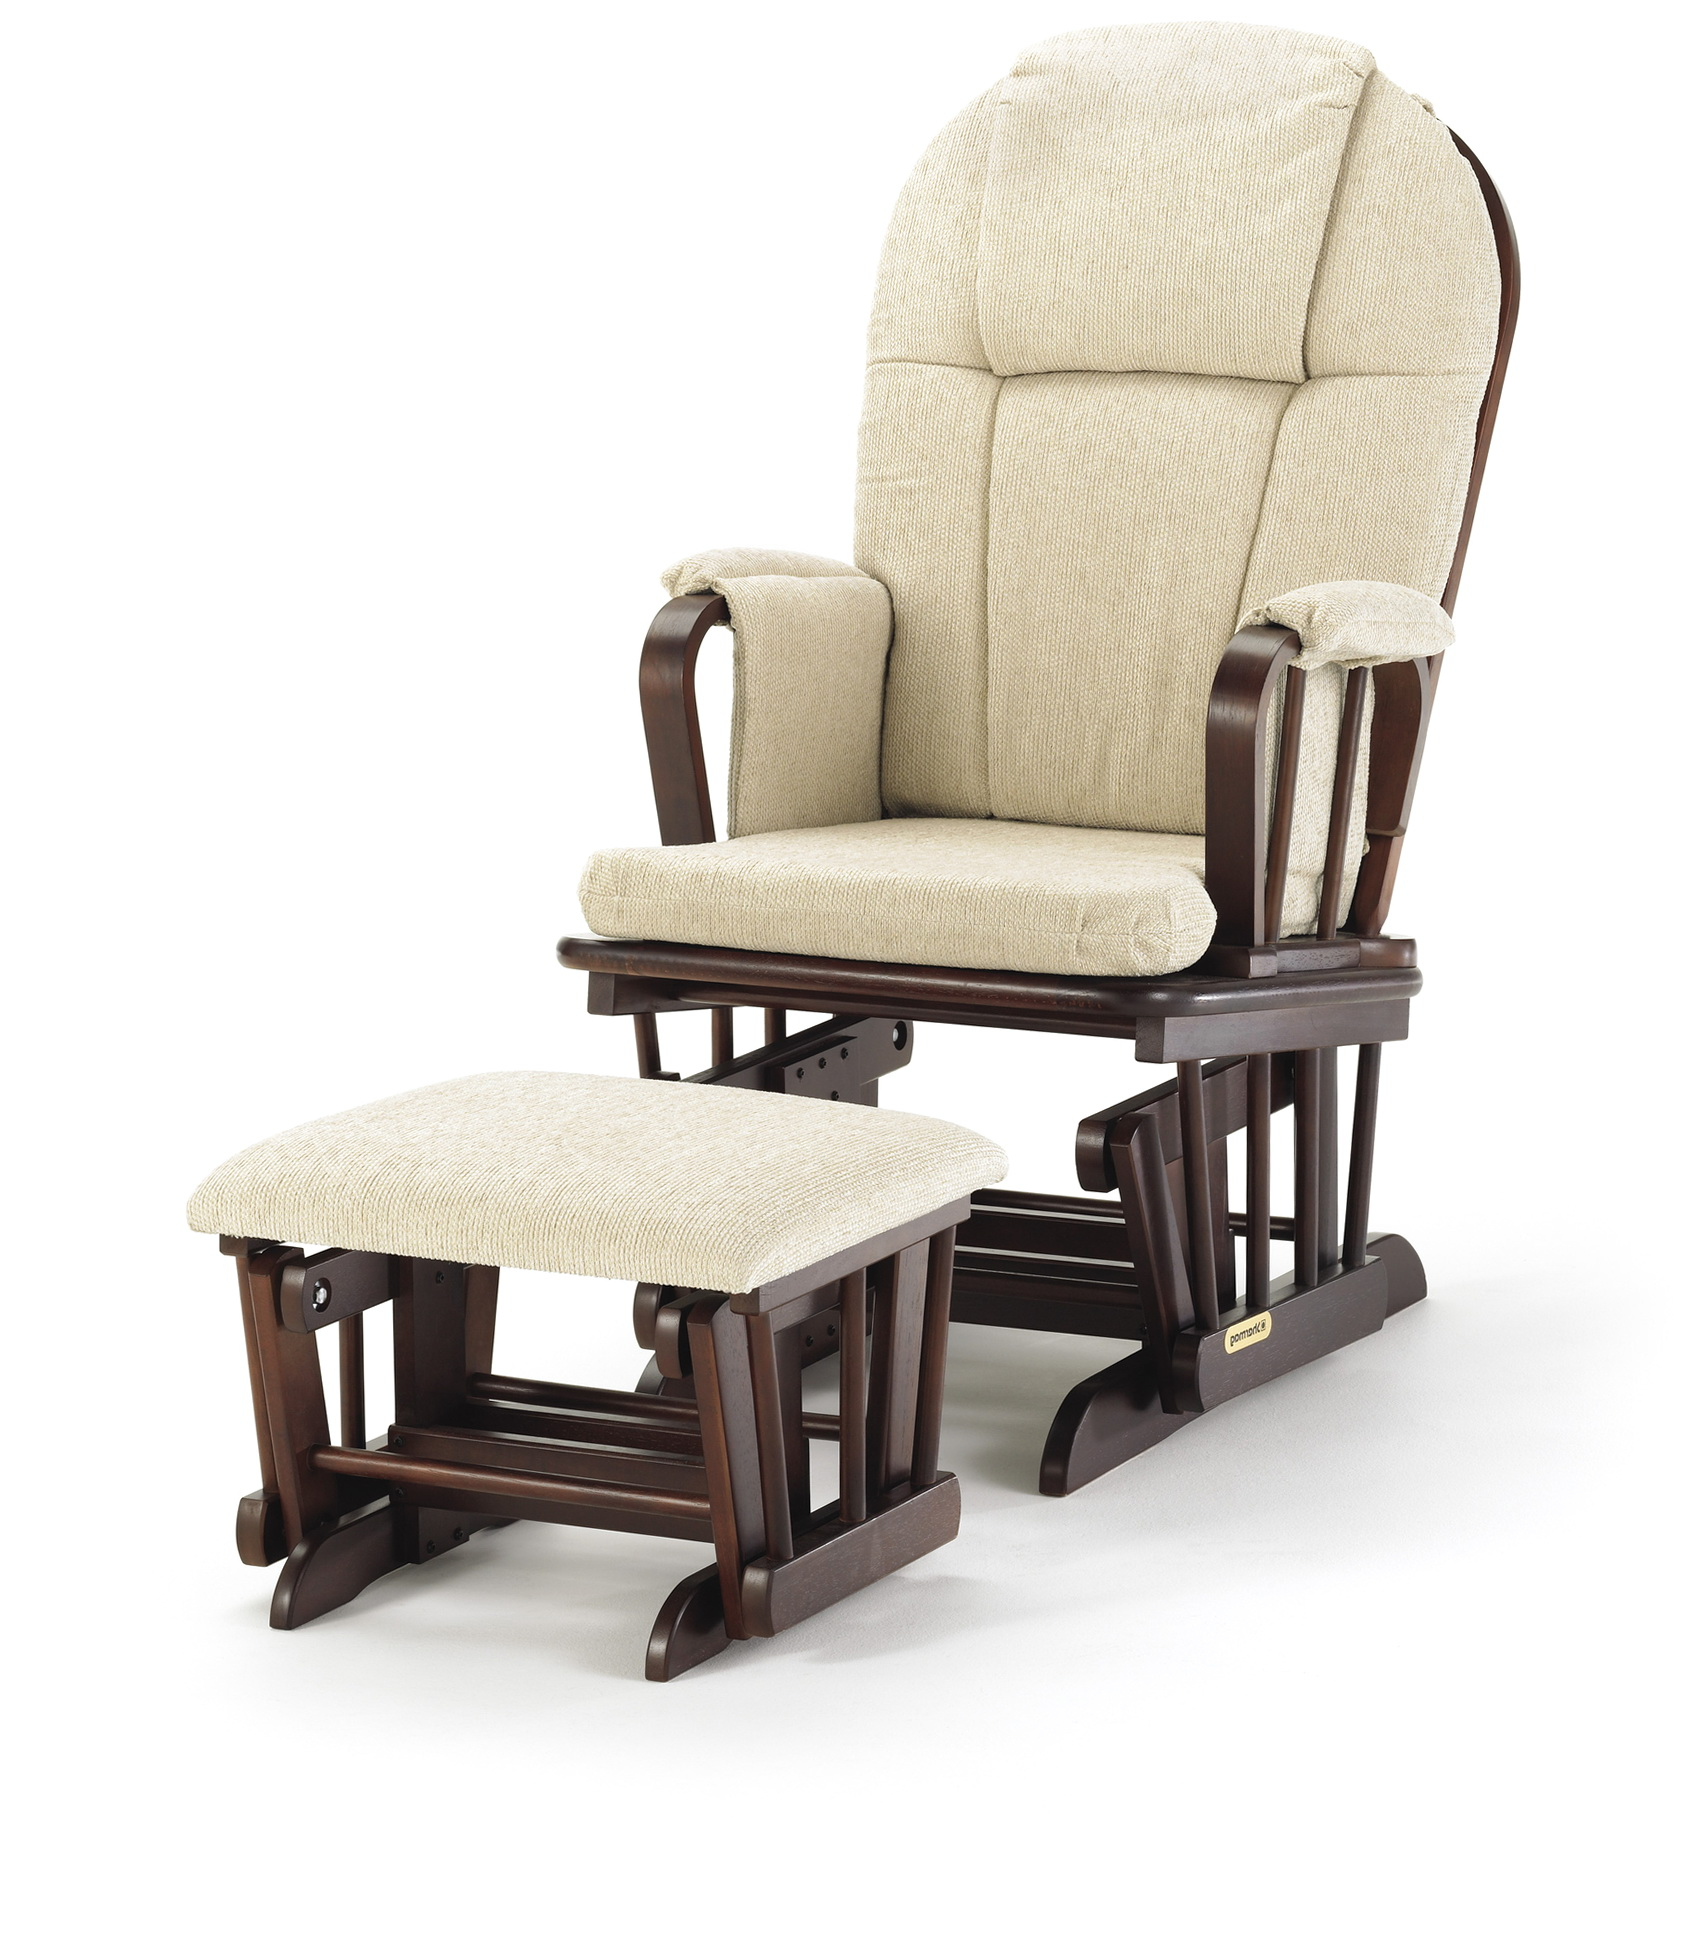 Glider Rocker Cushions Walmart Home Design Ideas